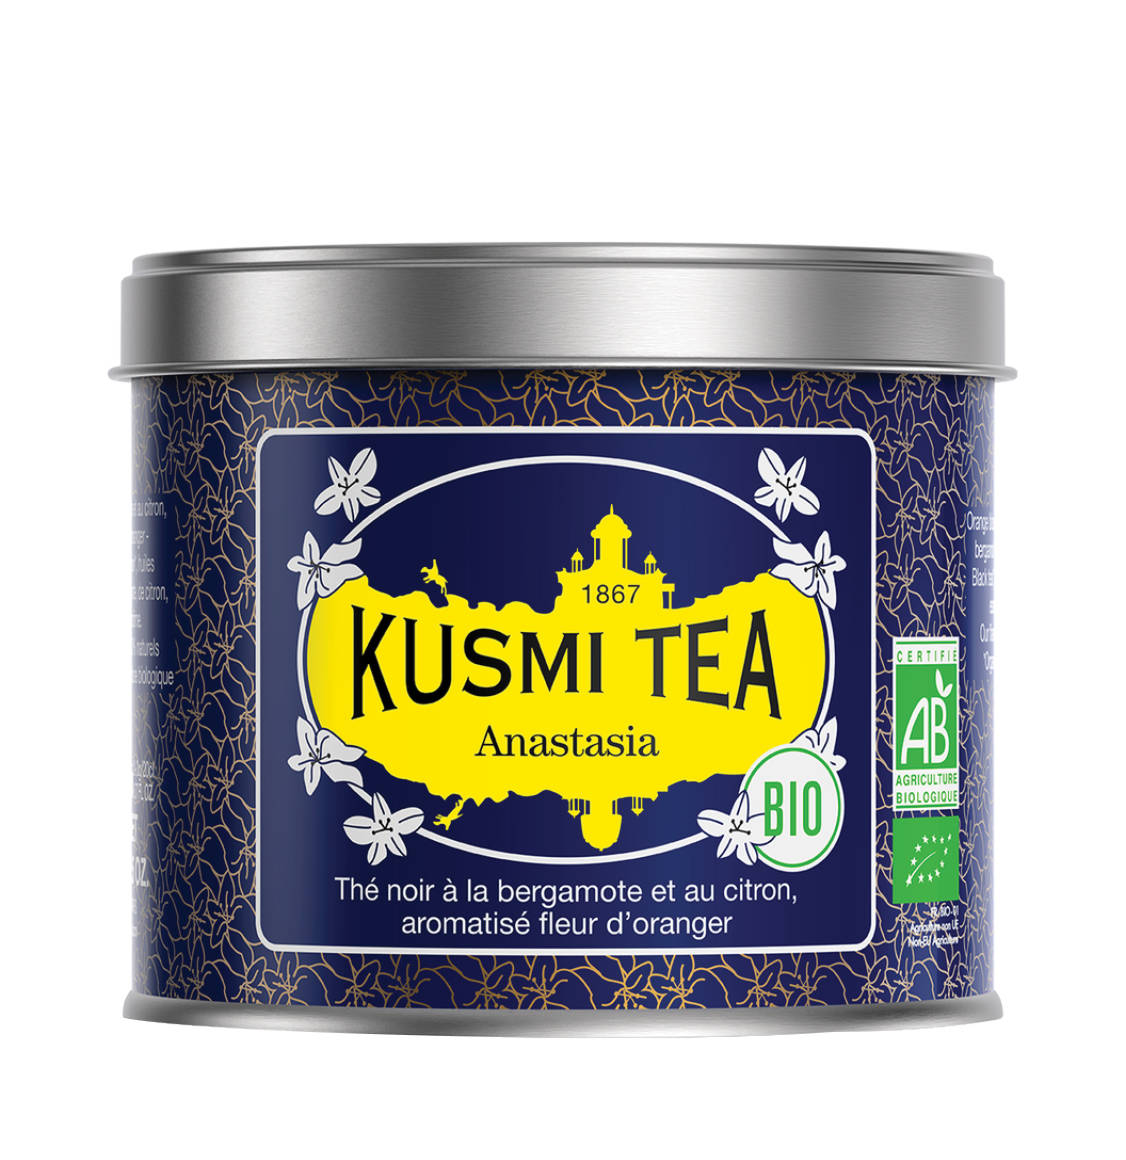 Kusmi Tea Anastasia Organic Exclusive Blend Loose Tea BIO 100g